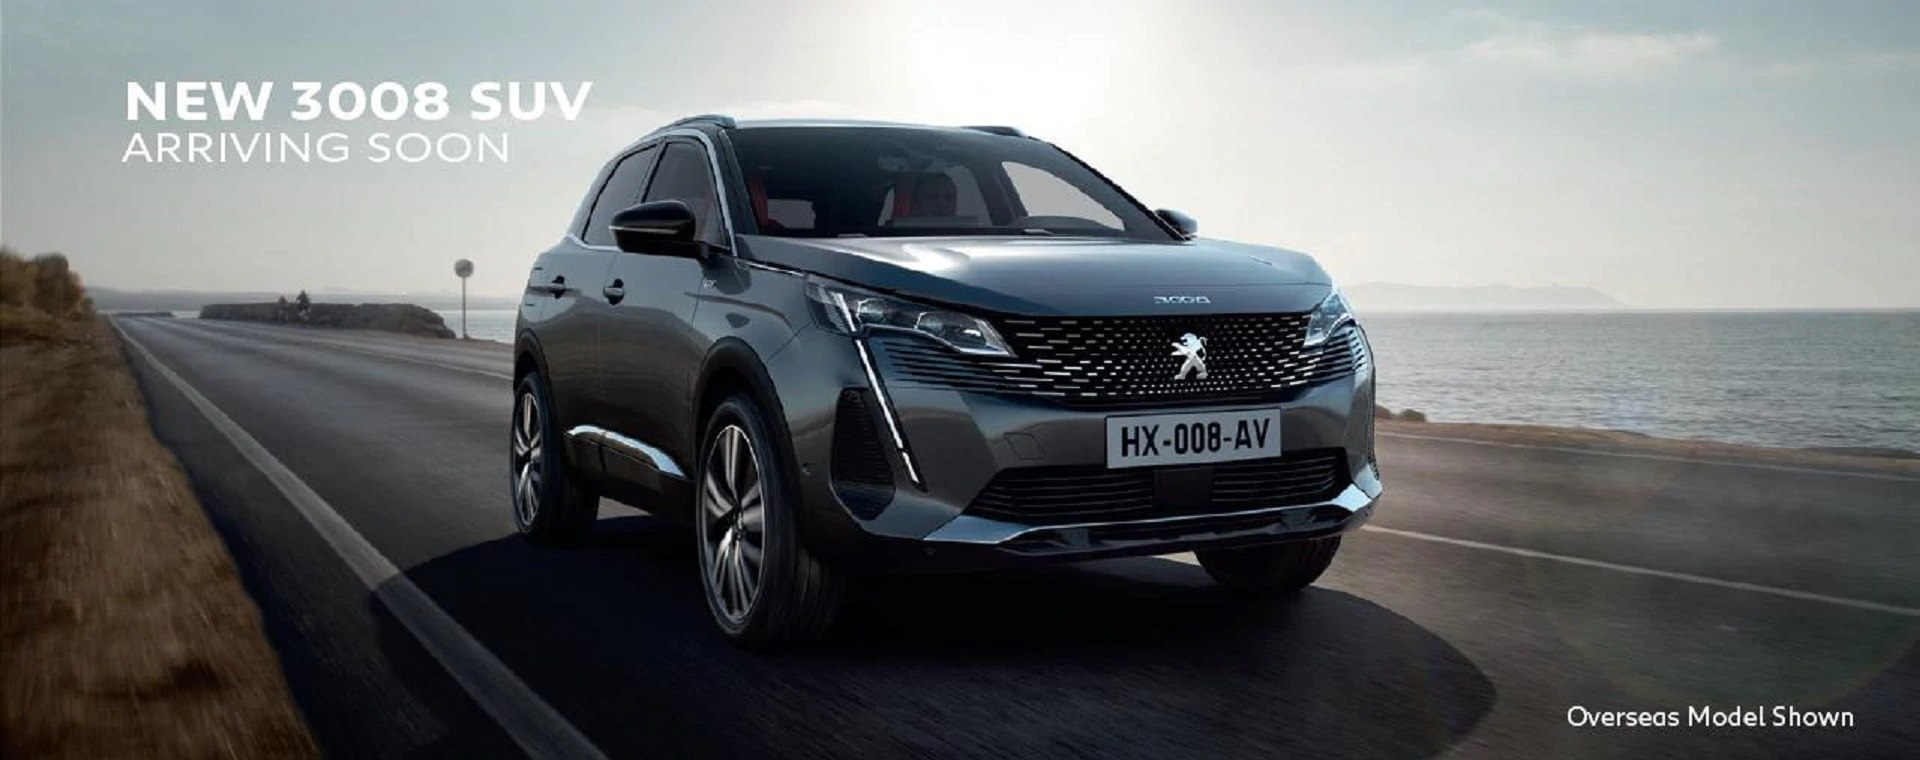 PEUGEOT New 3008 Coming Soon